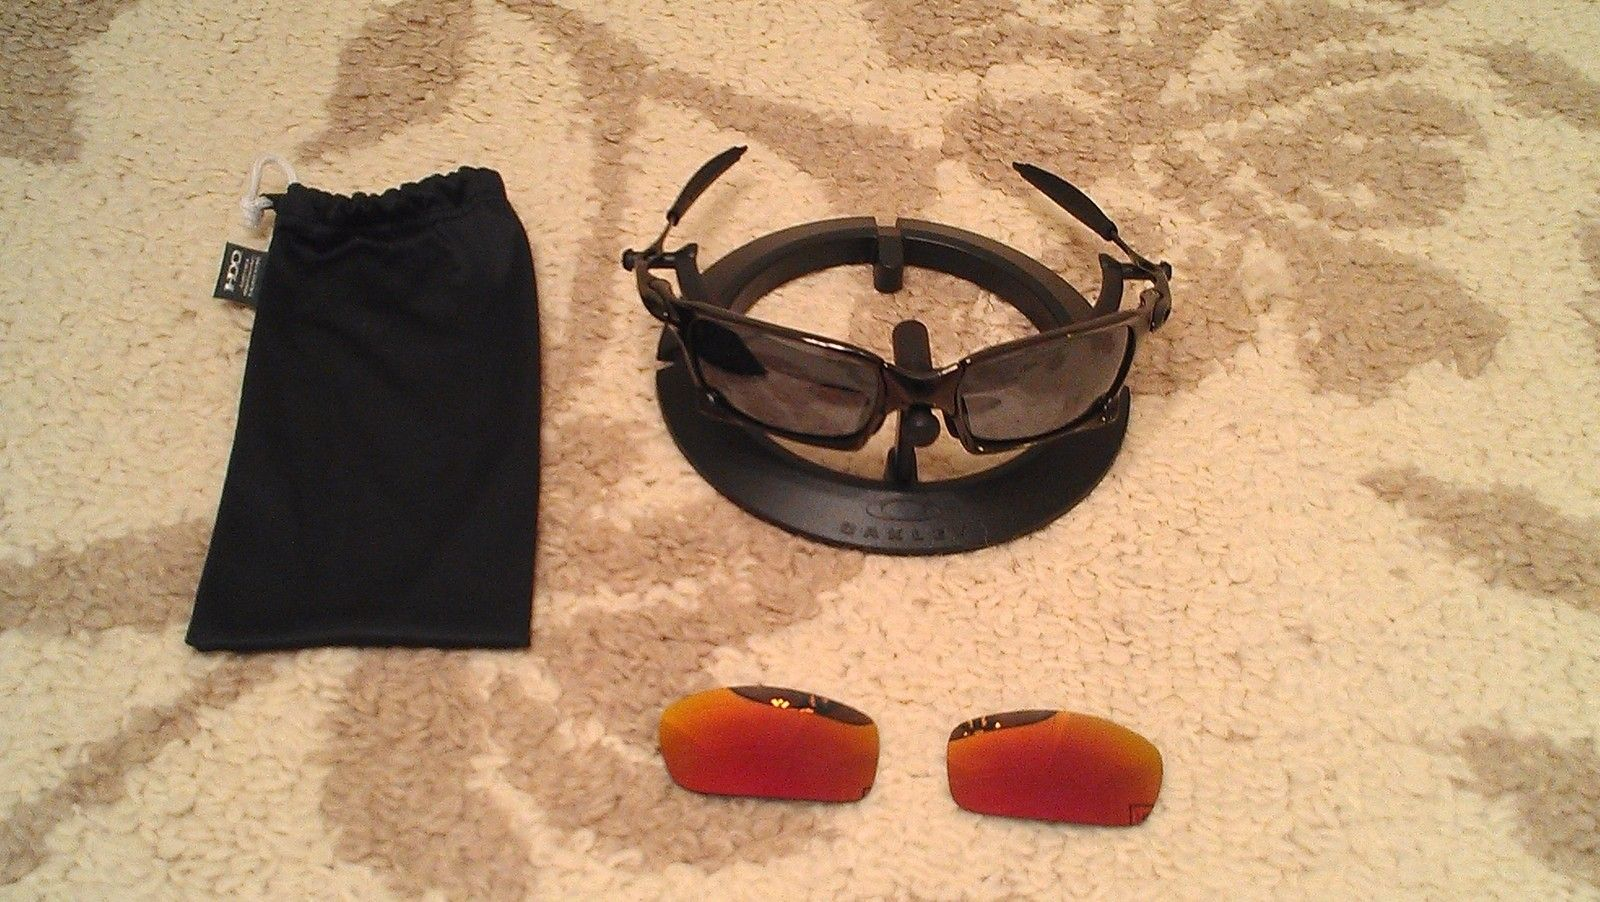 XS Polished Carbon/BIP + Brand New Oakley Eyepatch 2 - $325 OBO -- Make An Offer..Must Go - xrcm.jpg